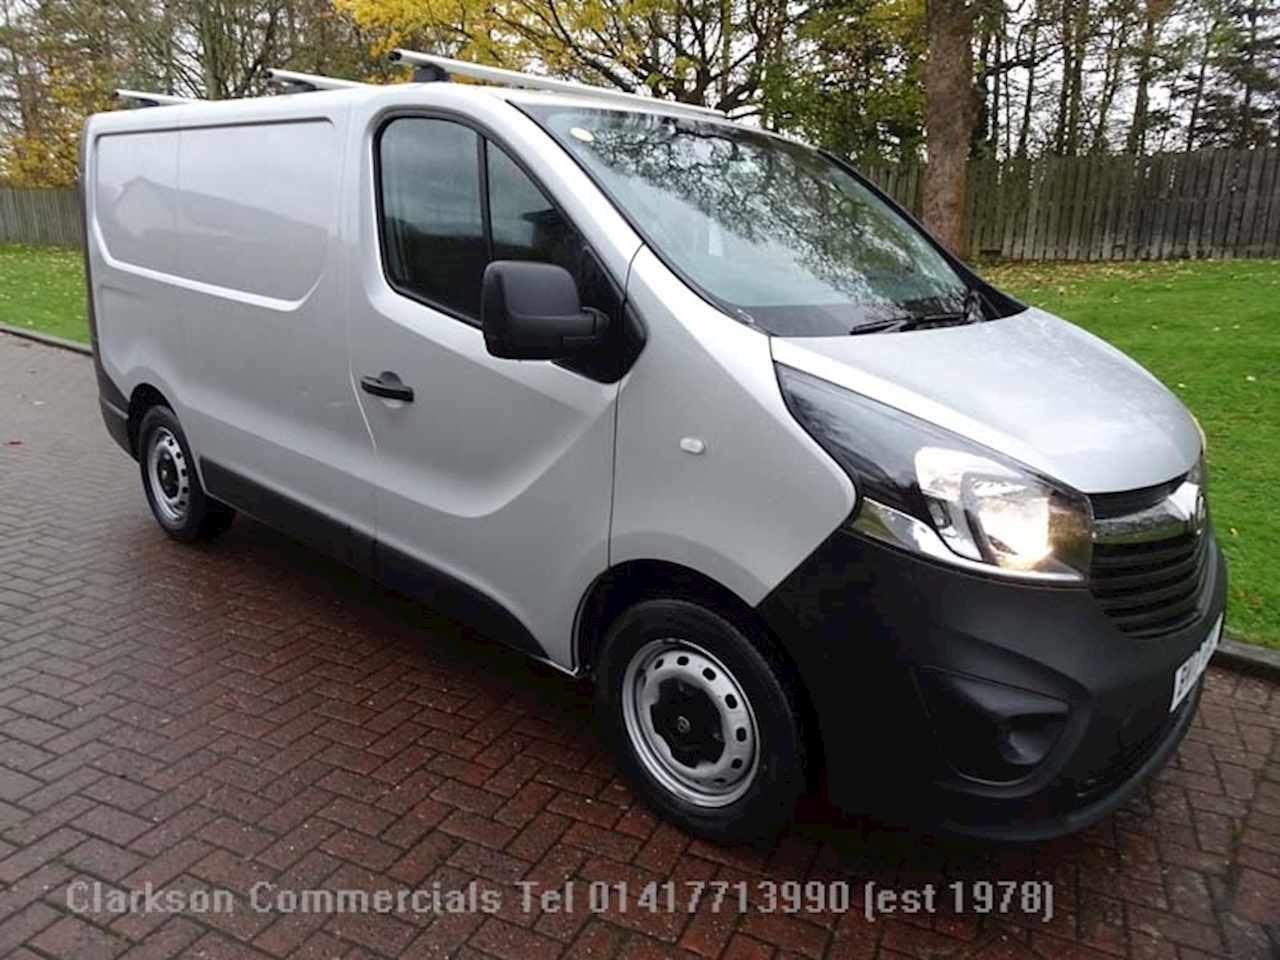 Vauxhall Vivaro 1.6 CDTi 2700 ecoFLEX Panel Van Diesel Manual Panel Van Manual Diesel